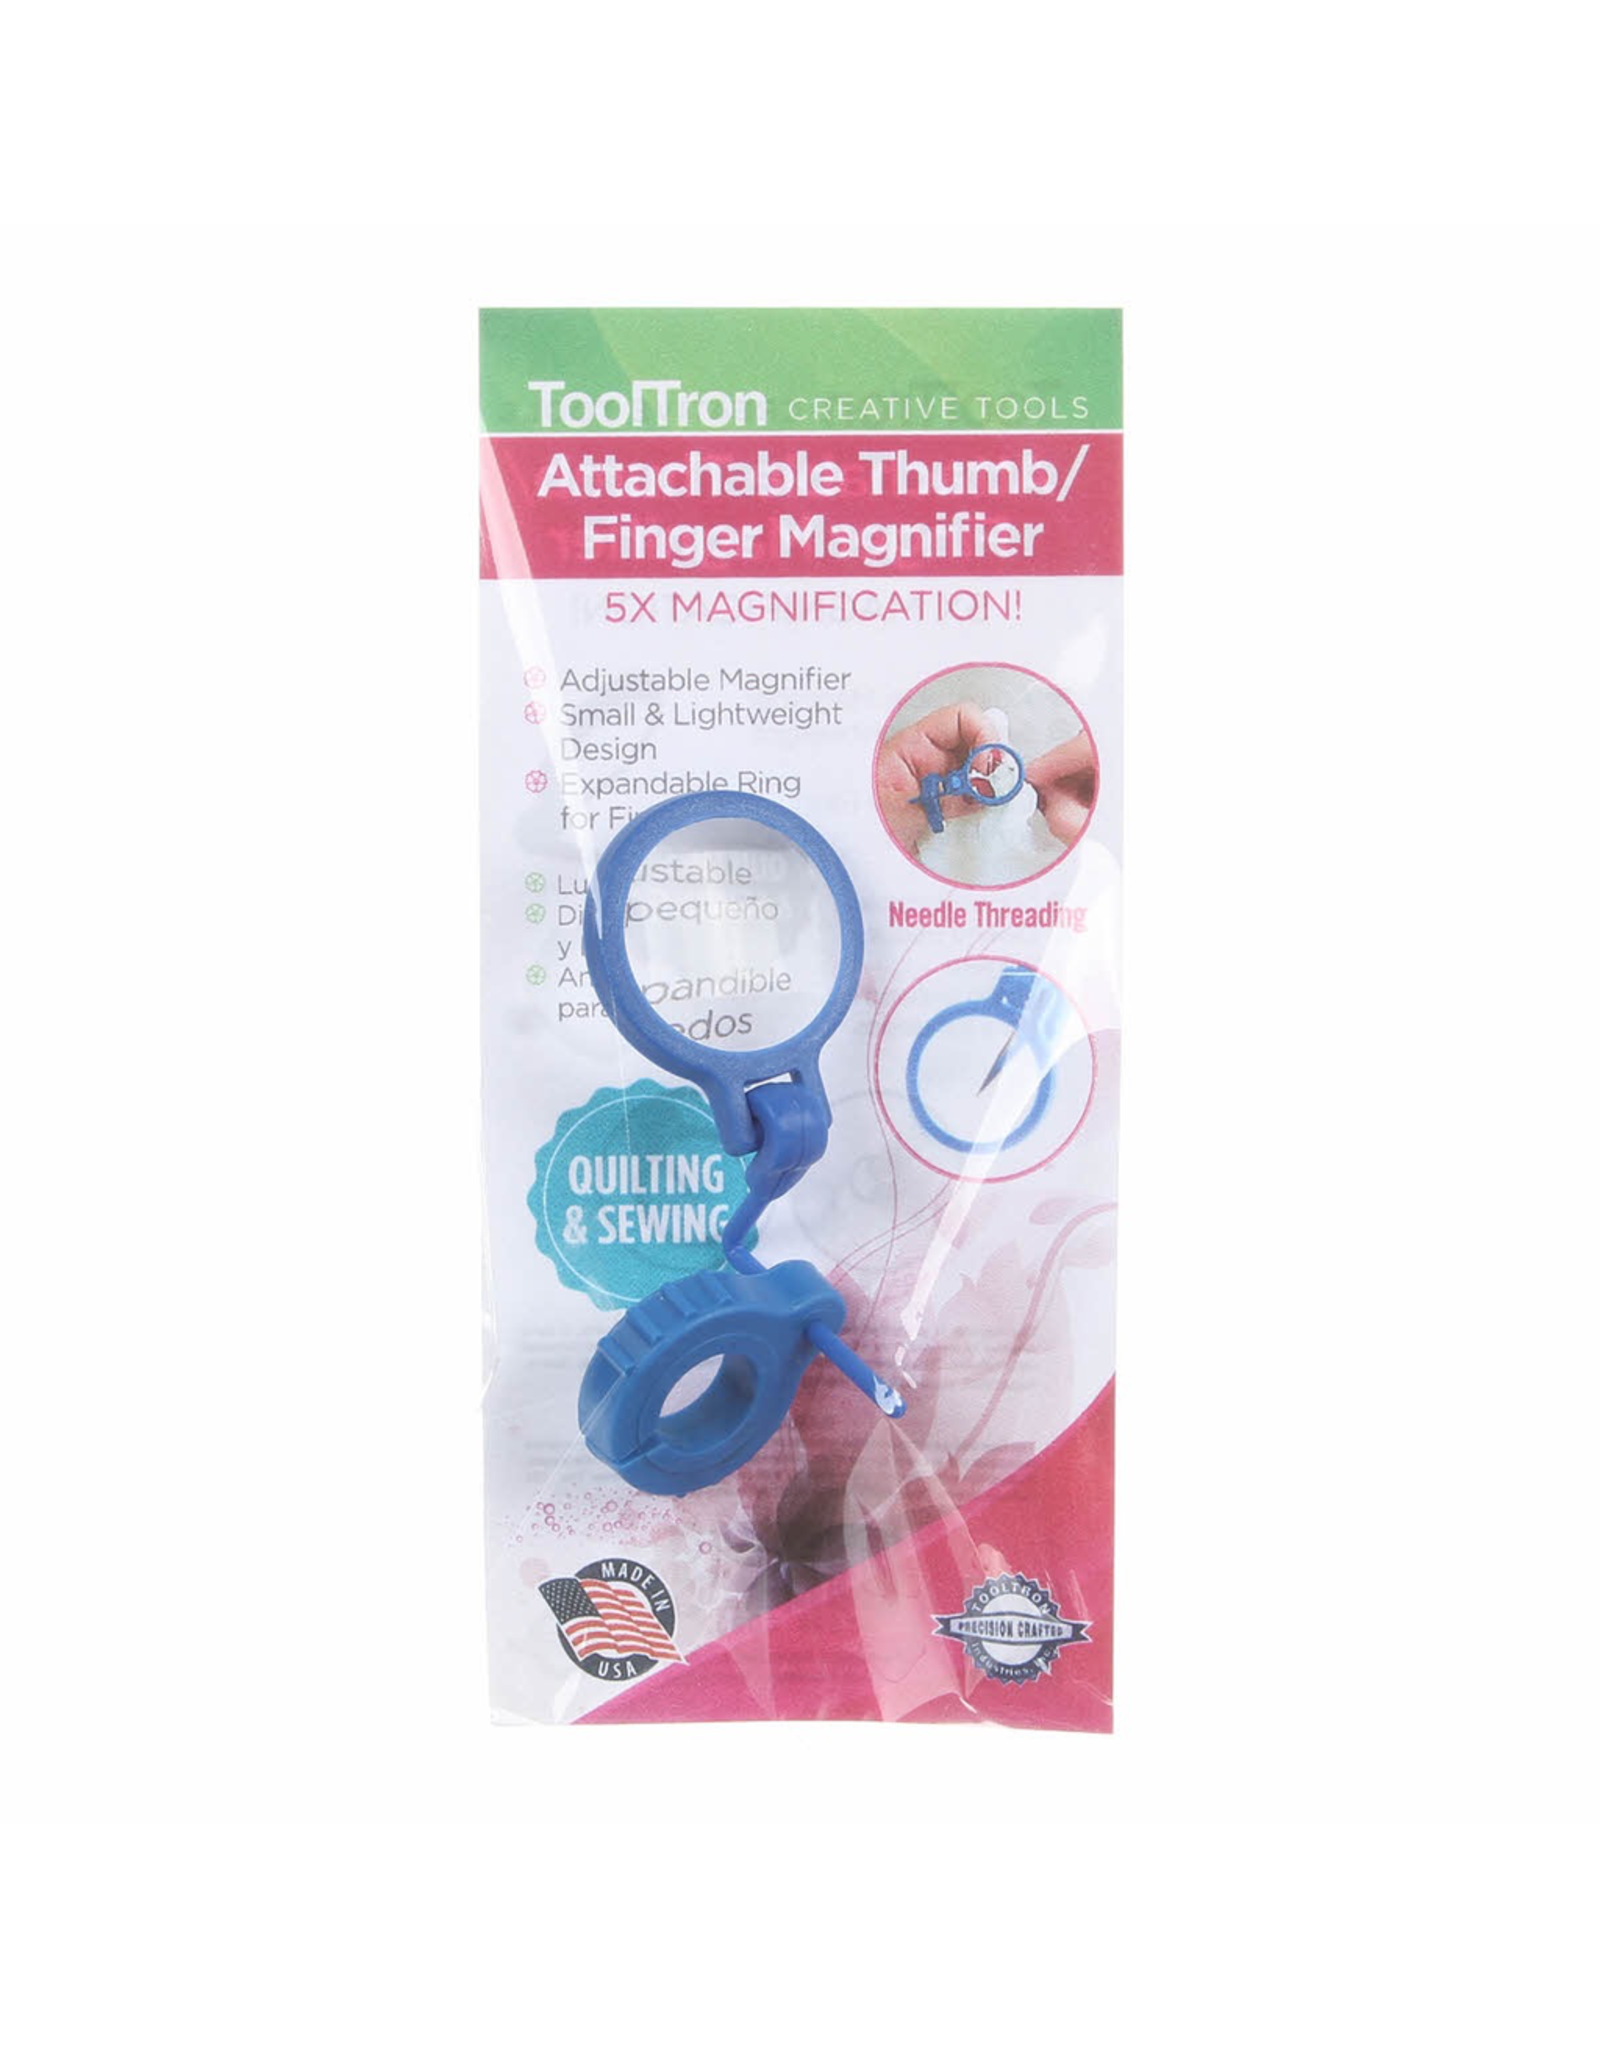 Tooltron Attachable Thumb/Finger Magnifier